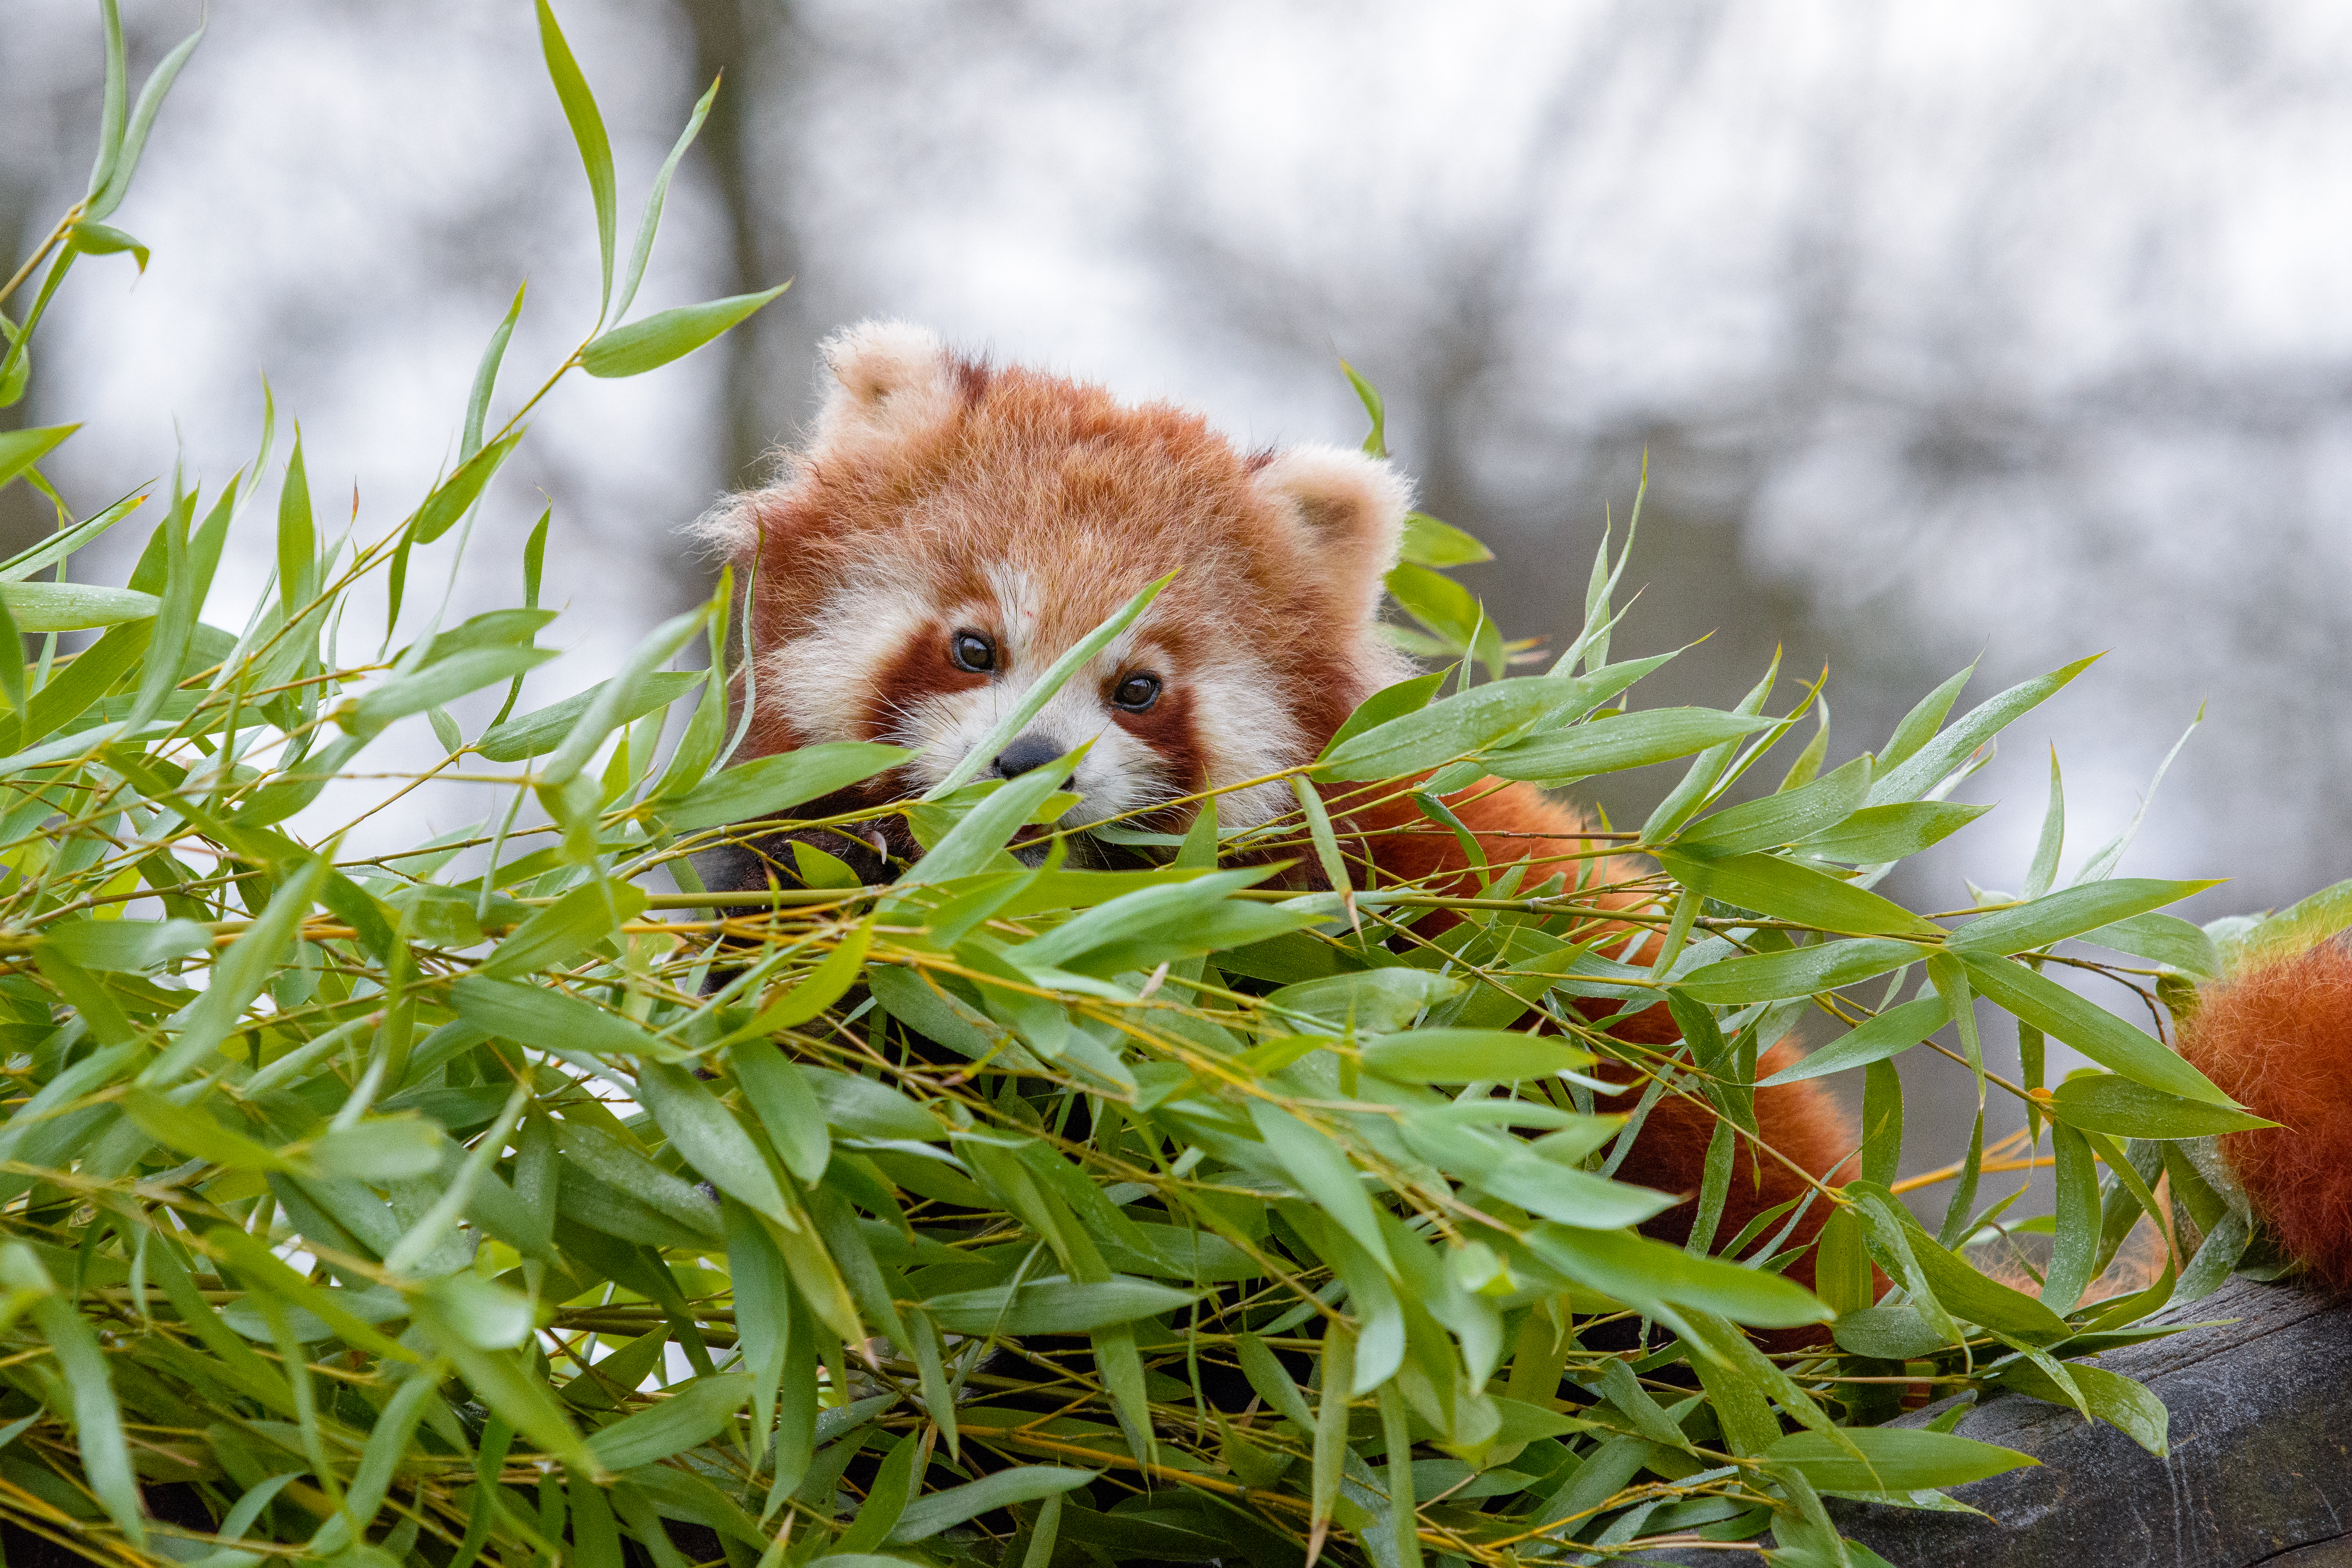 107482 download wallpaper Animals, Little Panda, Small Panda, Brown, Fluffy, Animal, Branches screensavers and pictures for free